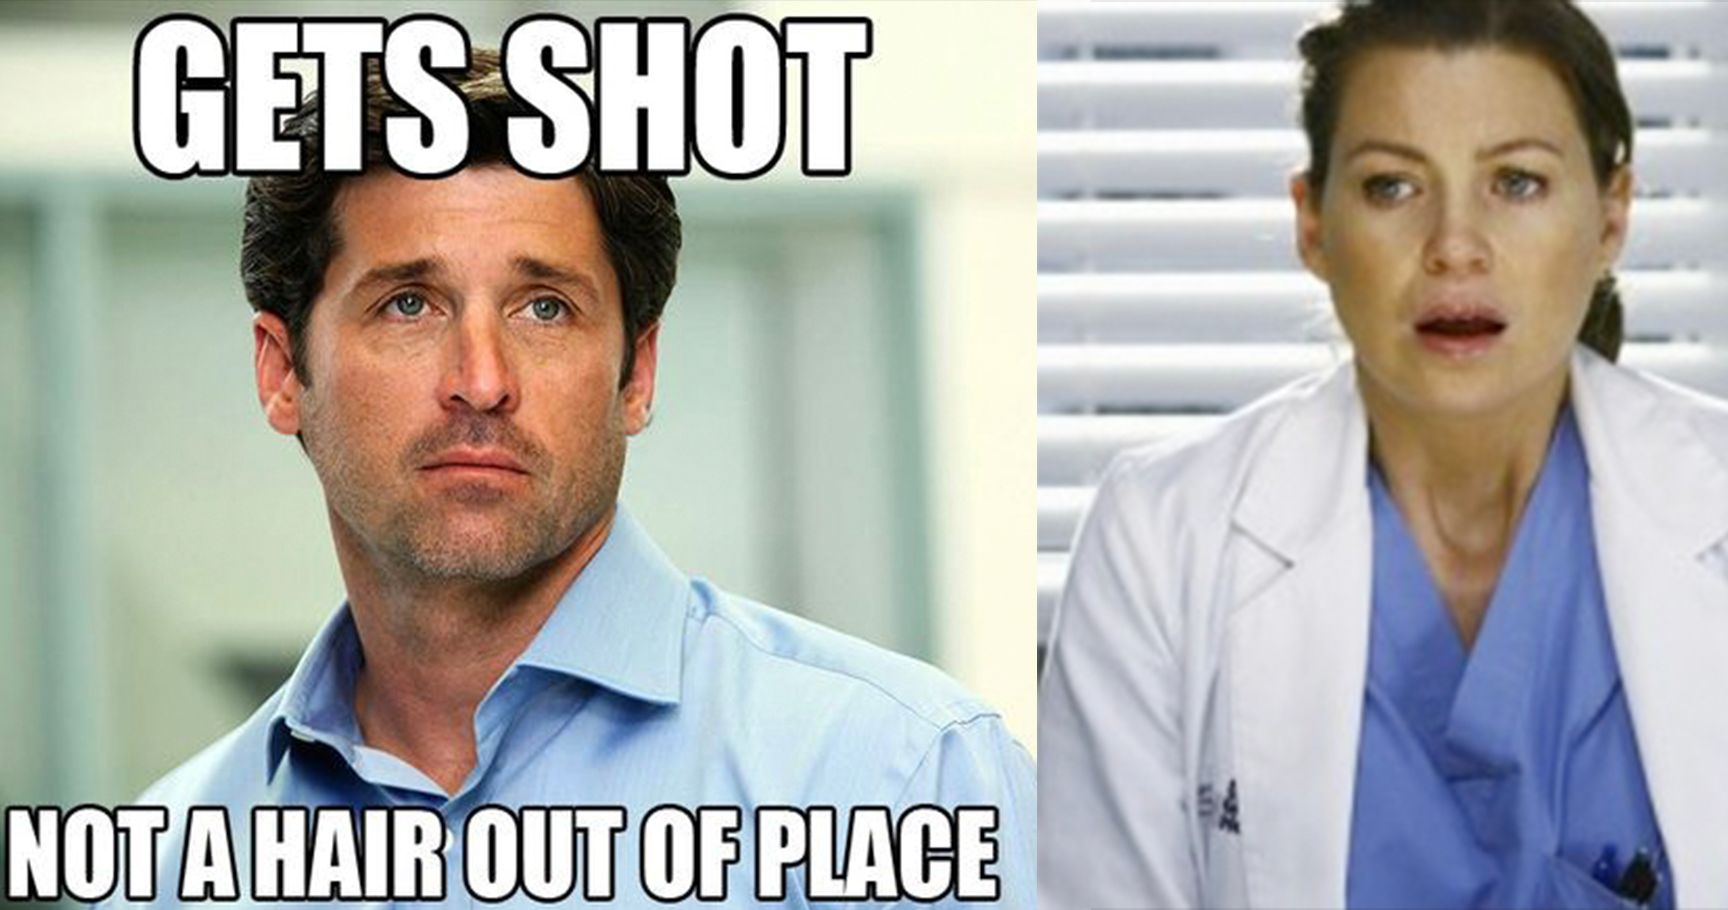 15 Inappropriate 'Grey's Anatomy' Memes That Will Seriously Offend You